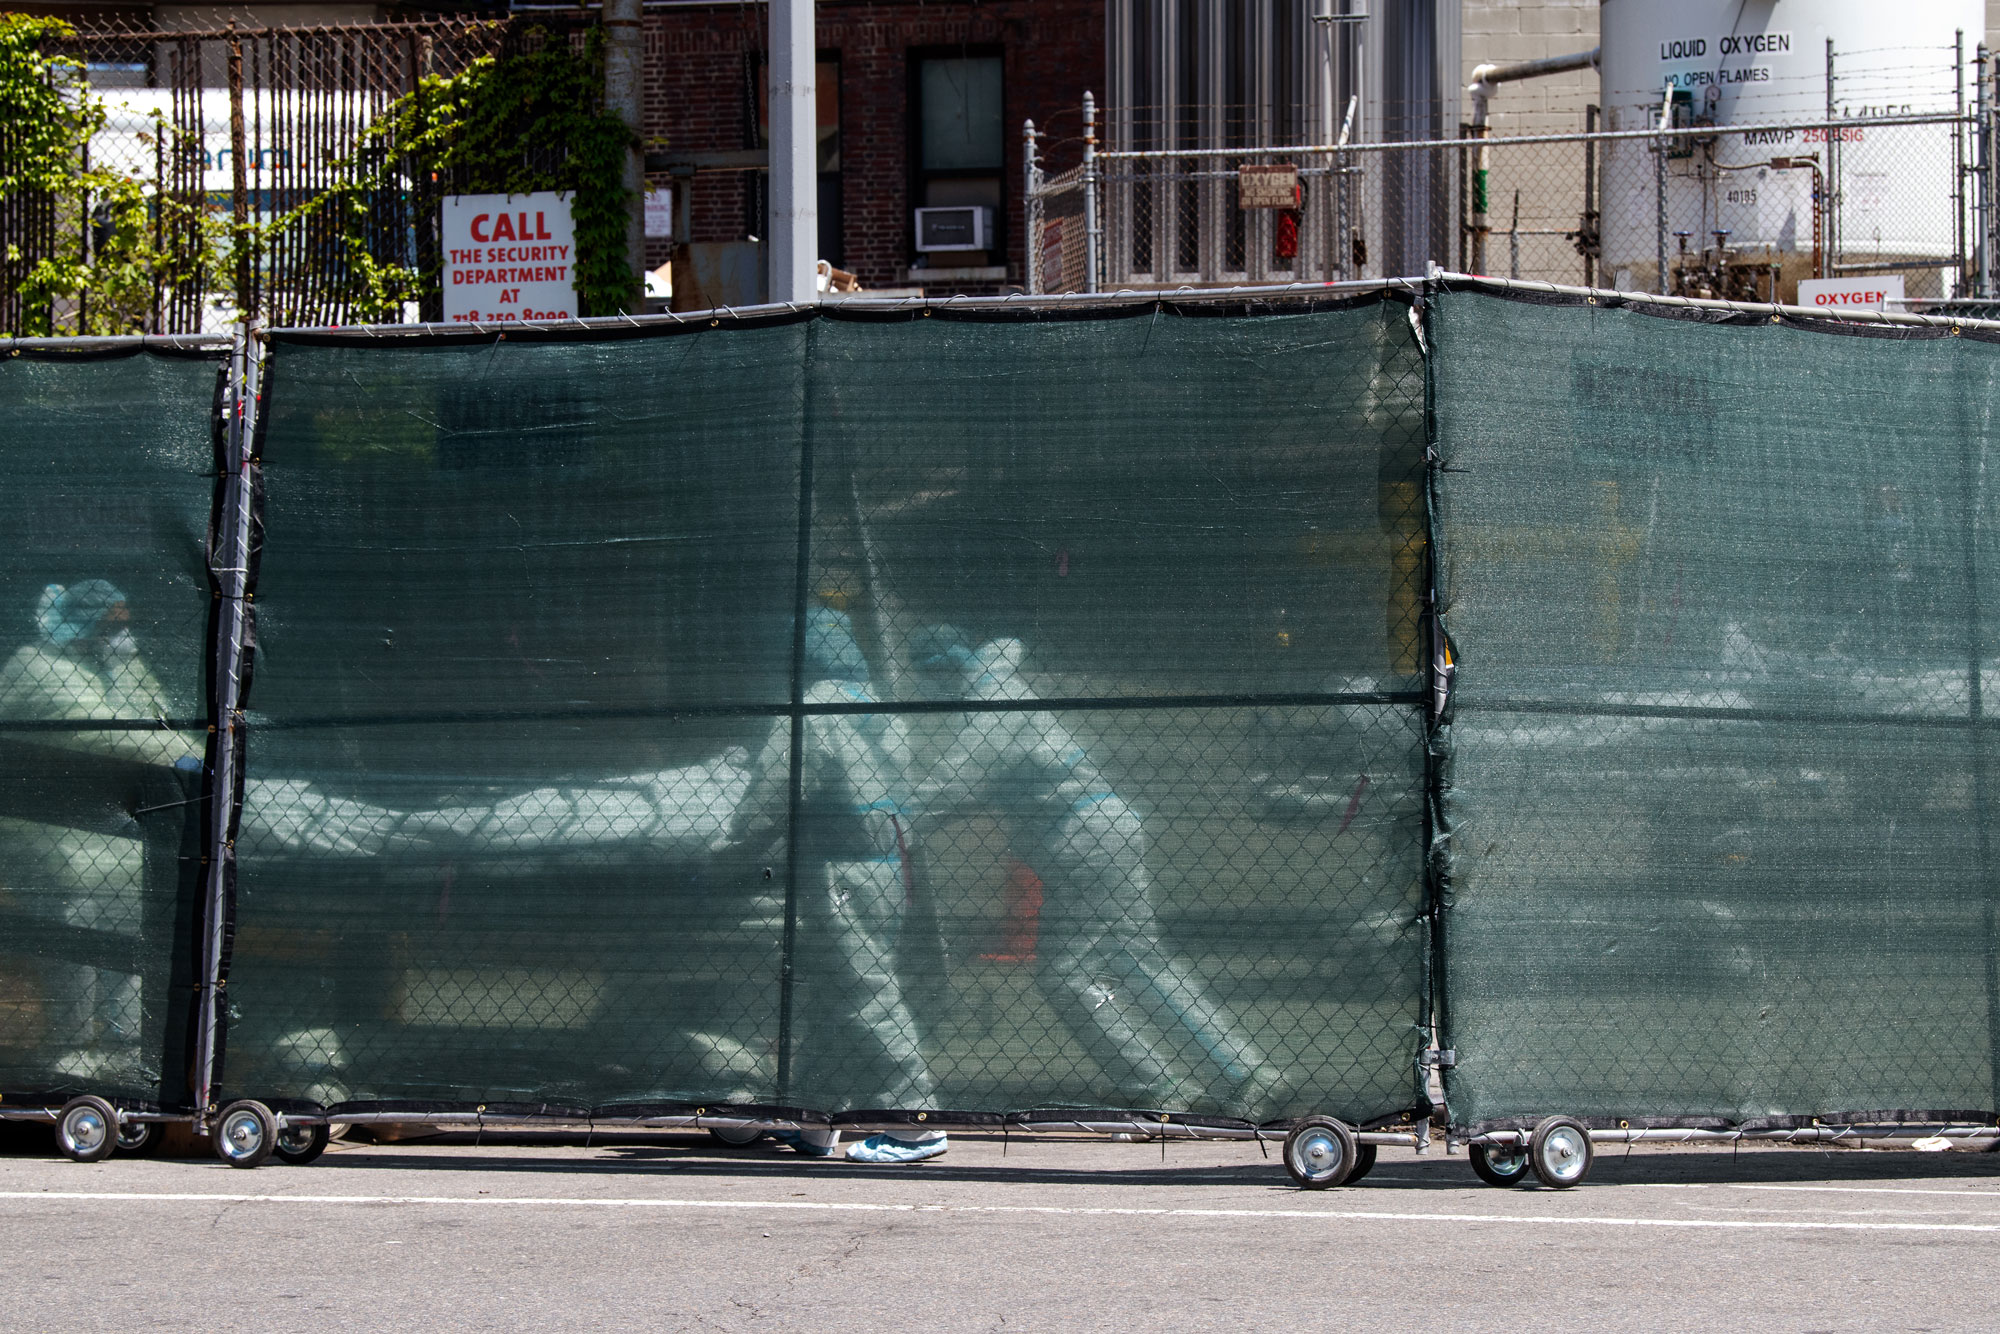 Hospital personnel behind a barricade move deceased individuals to the overflow morgue trailer outside The Brooklyn Hospital Center on May 7, in the Brooklyn borough of New York City.